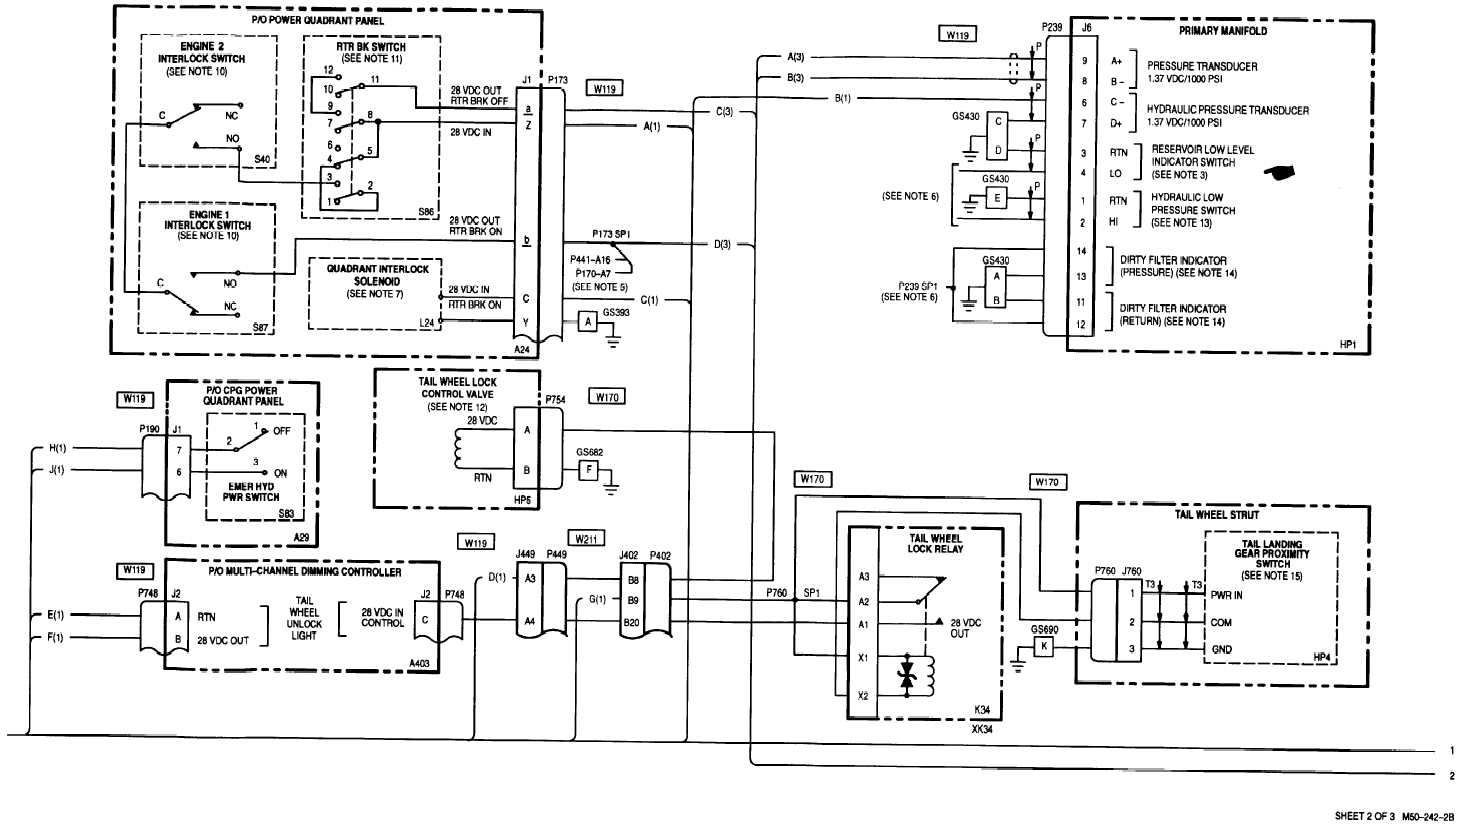 15-1  hydraulic -wiring diagram  cont